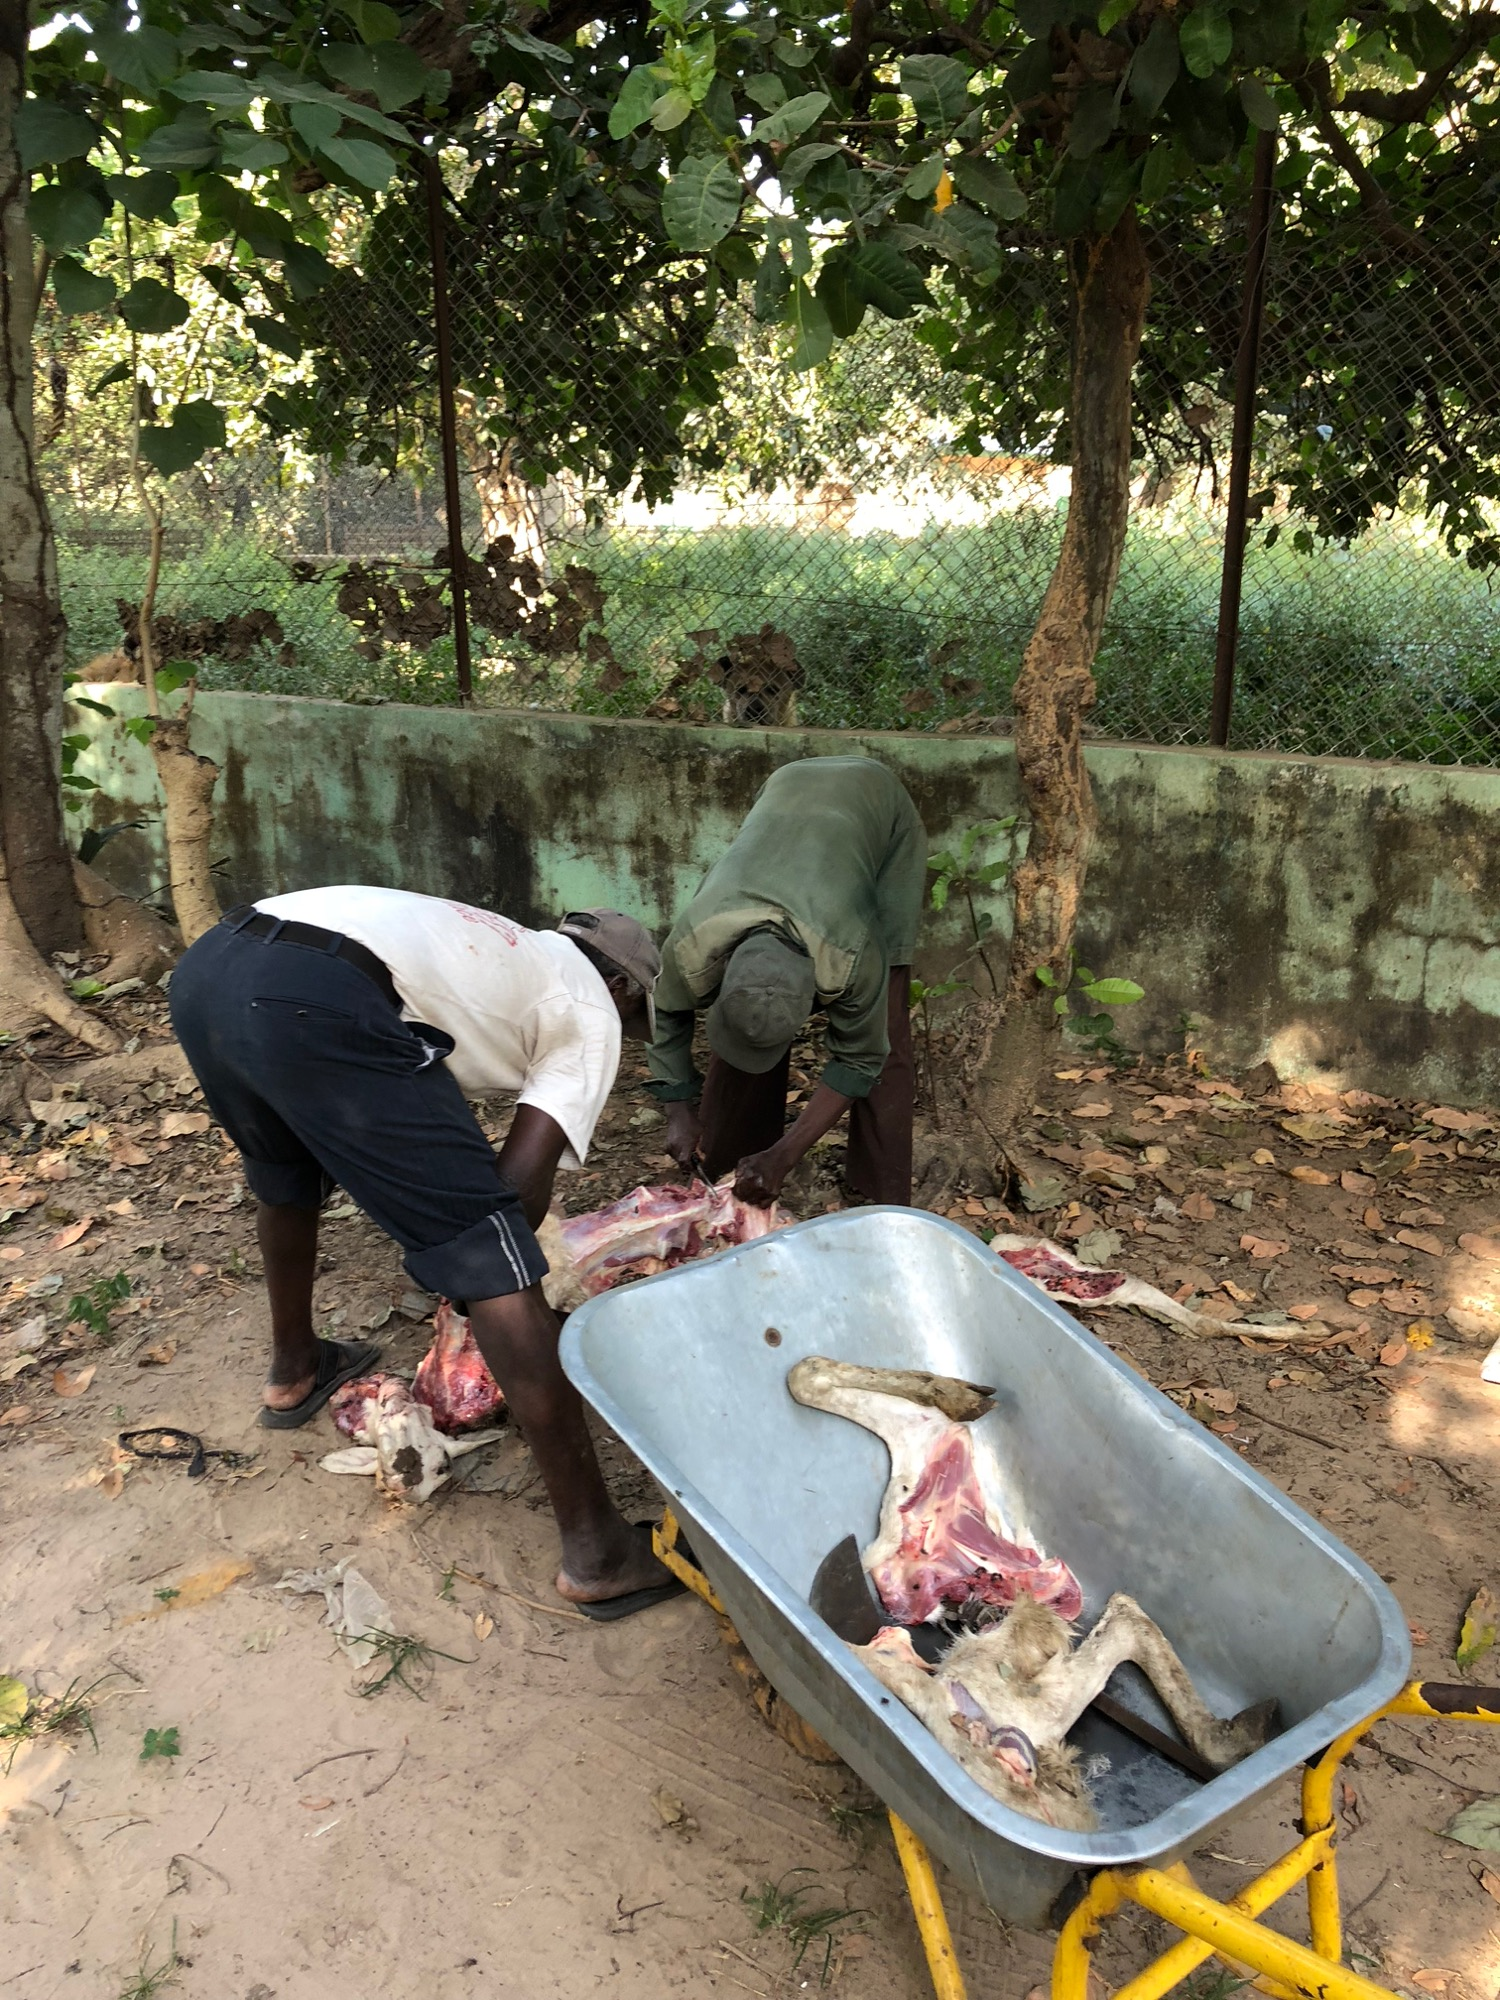 Sick goat butchered for hyenas